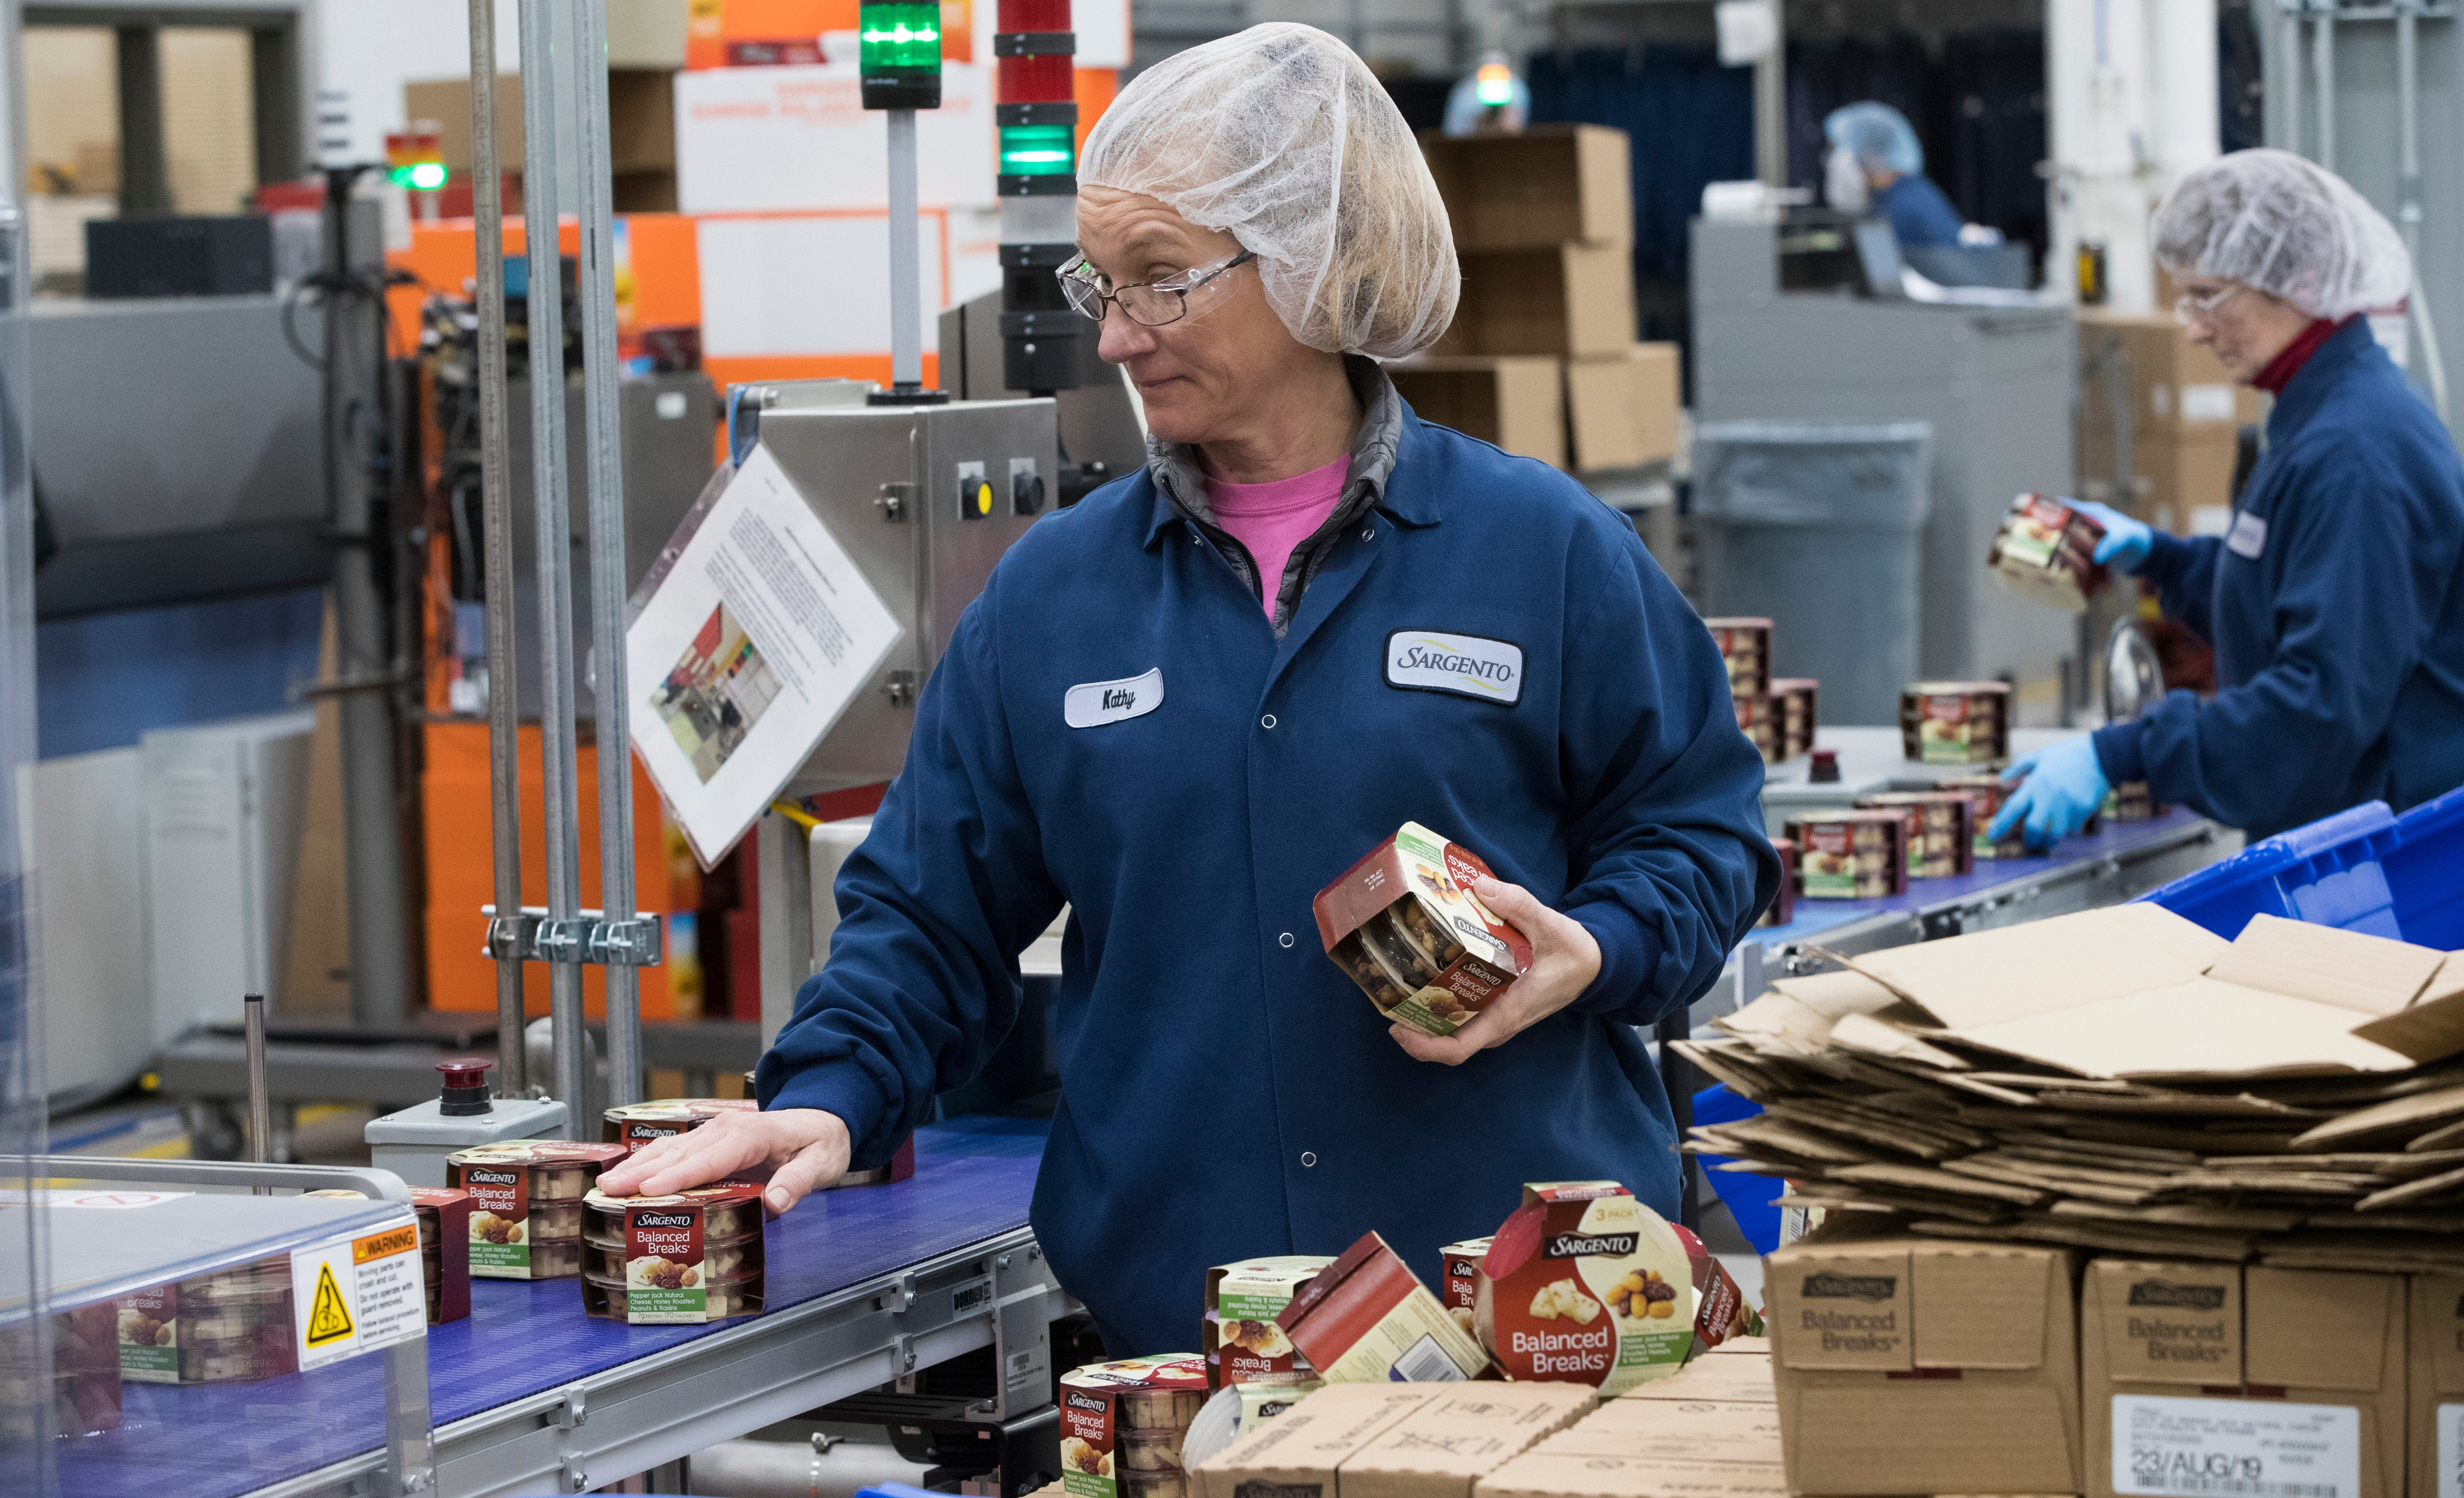 Kathy Griffey works on a line packaging Balanced Breaks snacks at Sargento Foods Inc. in Hilbert. The company employs about 2,300 people in Wisconsin. Sargento was the first company to sell packaged shredded cheese and the first to develop zippered packaging for its cheeses.